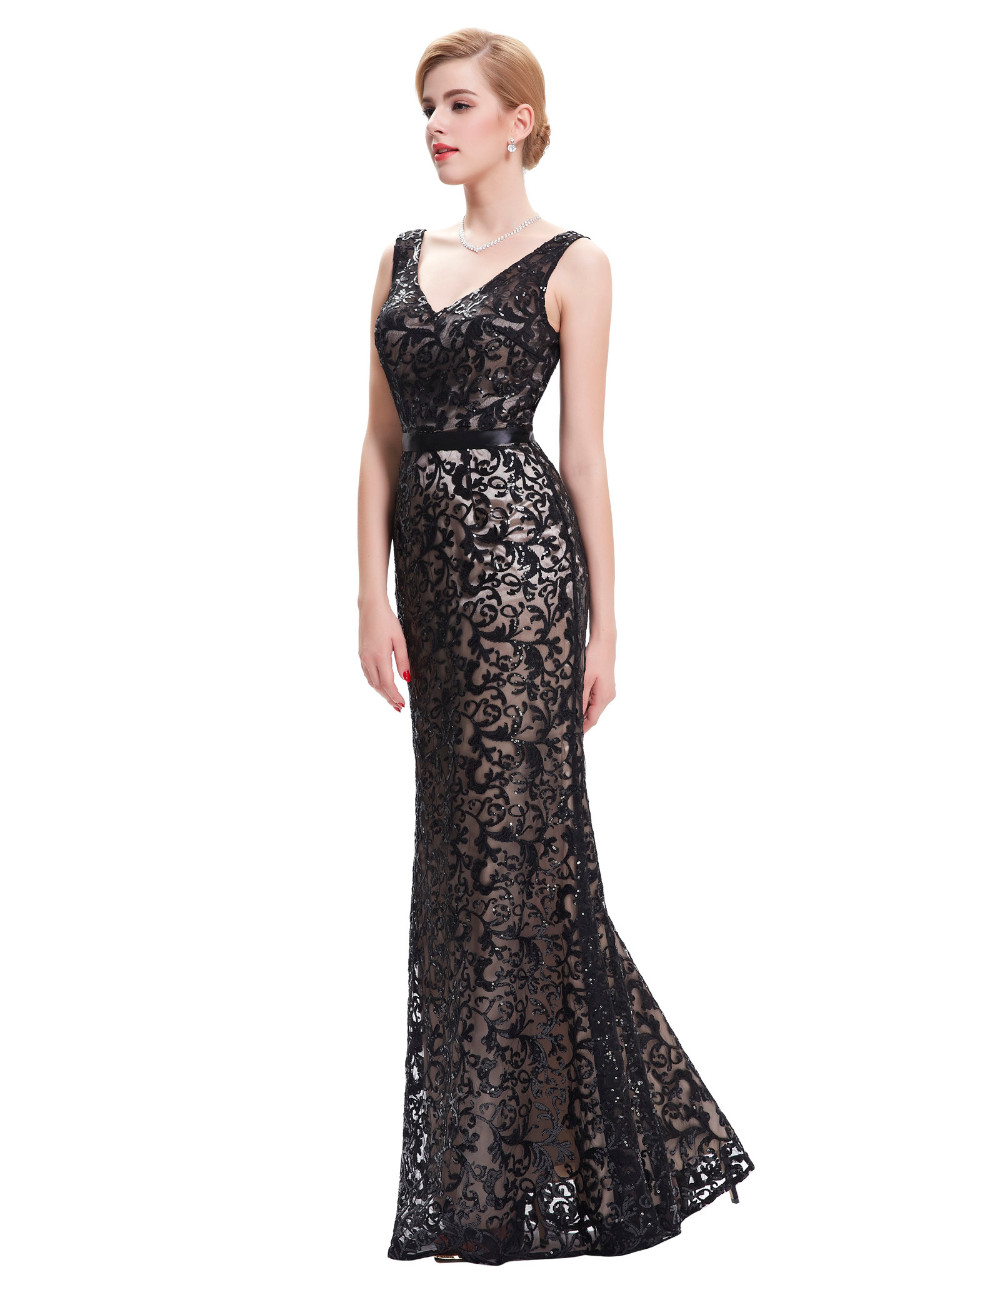 Long Evening Dress Kate Kasin Double V Neck Beaded Evening Gowns Lace Mother of the Bride Dresses Black Formal Prom Dress 0034 9